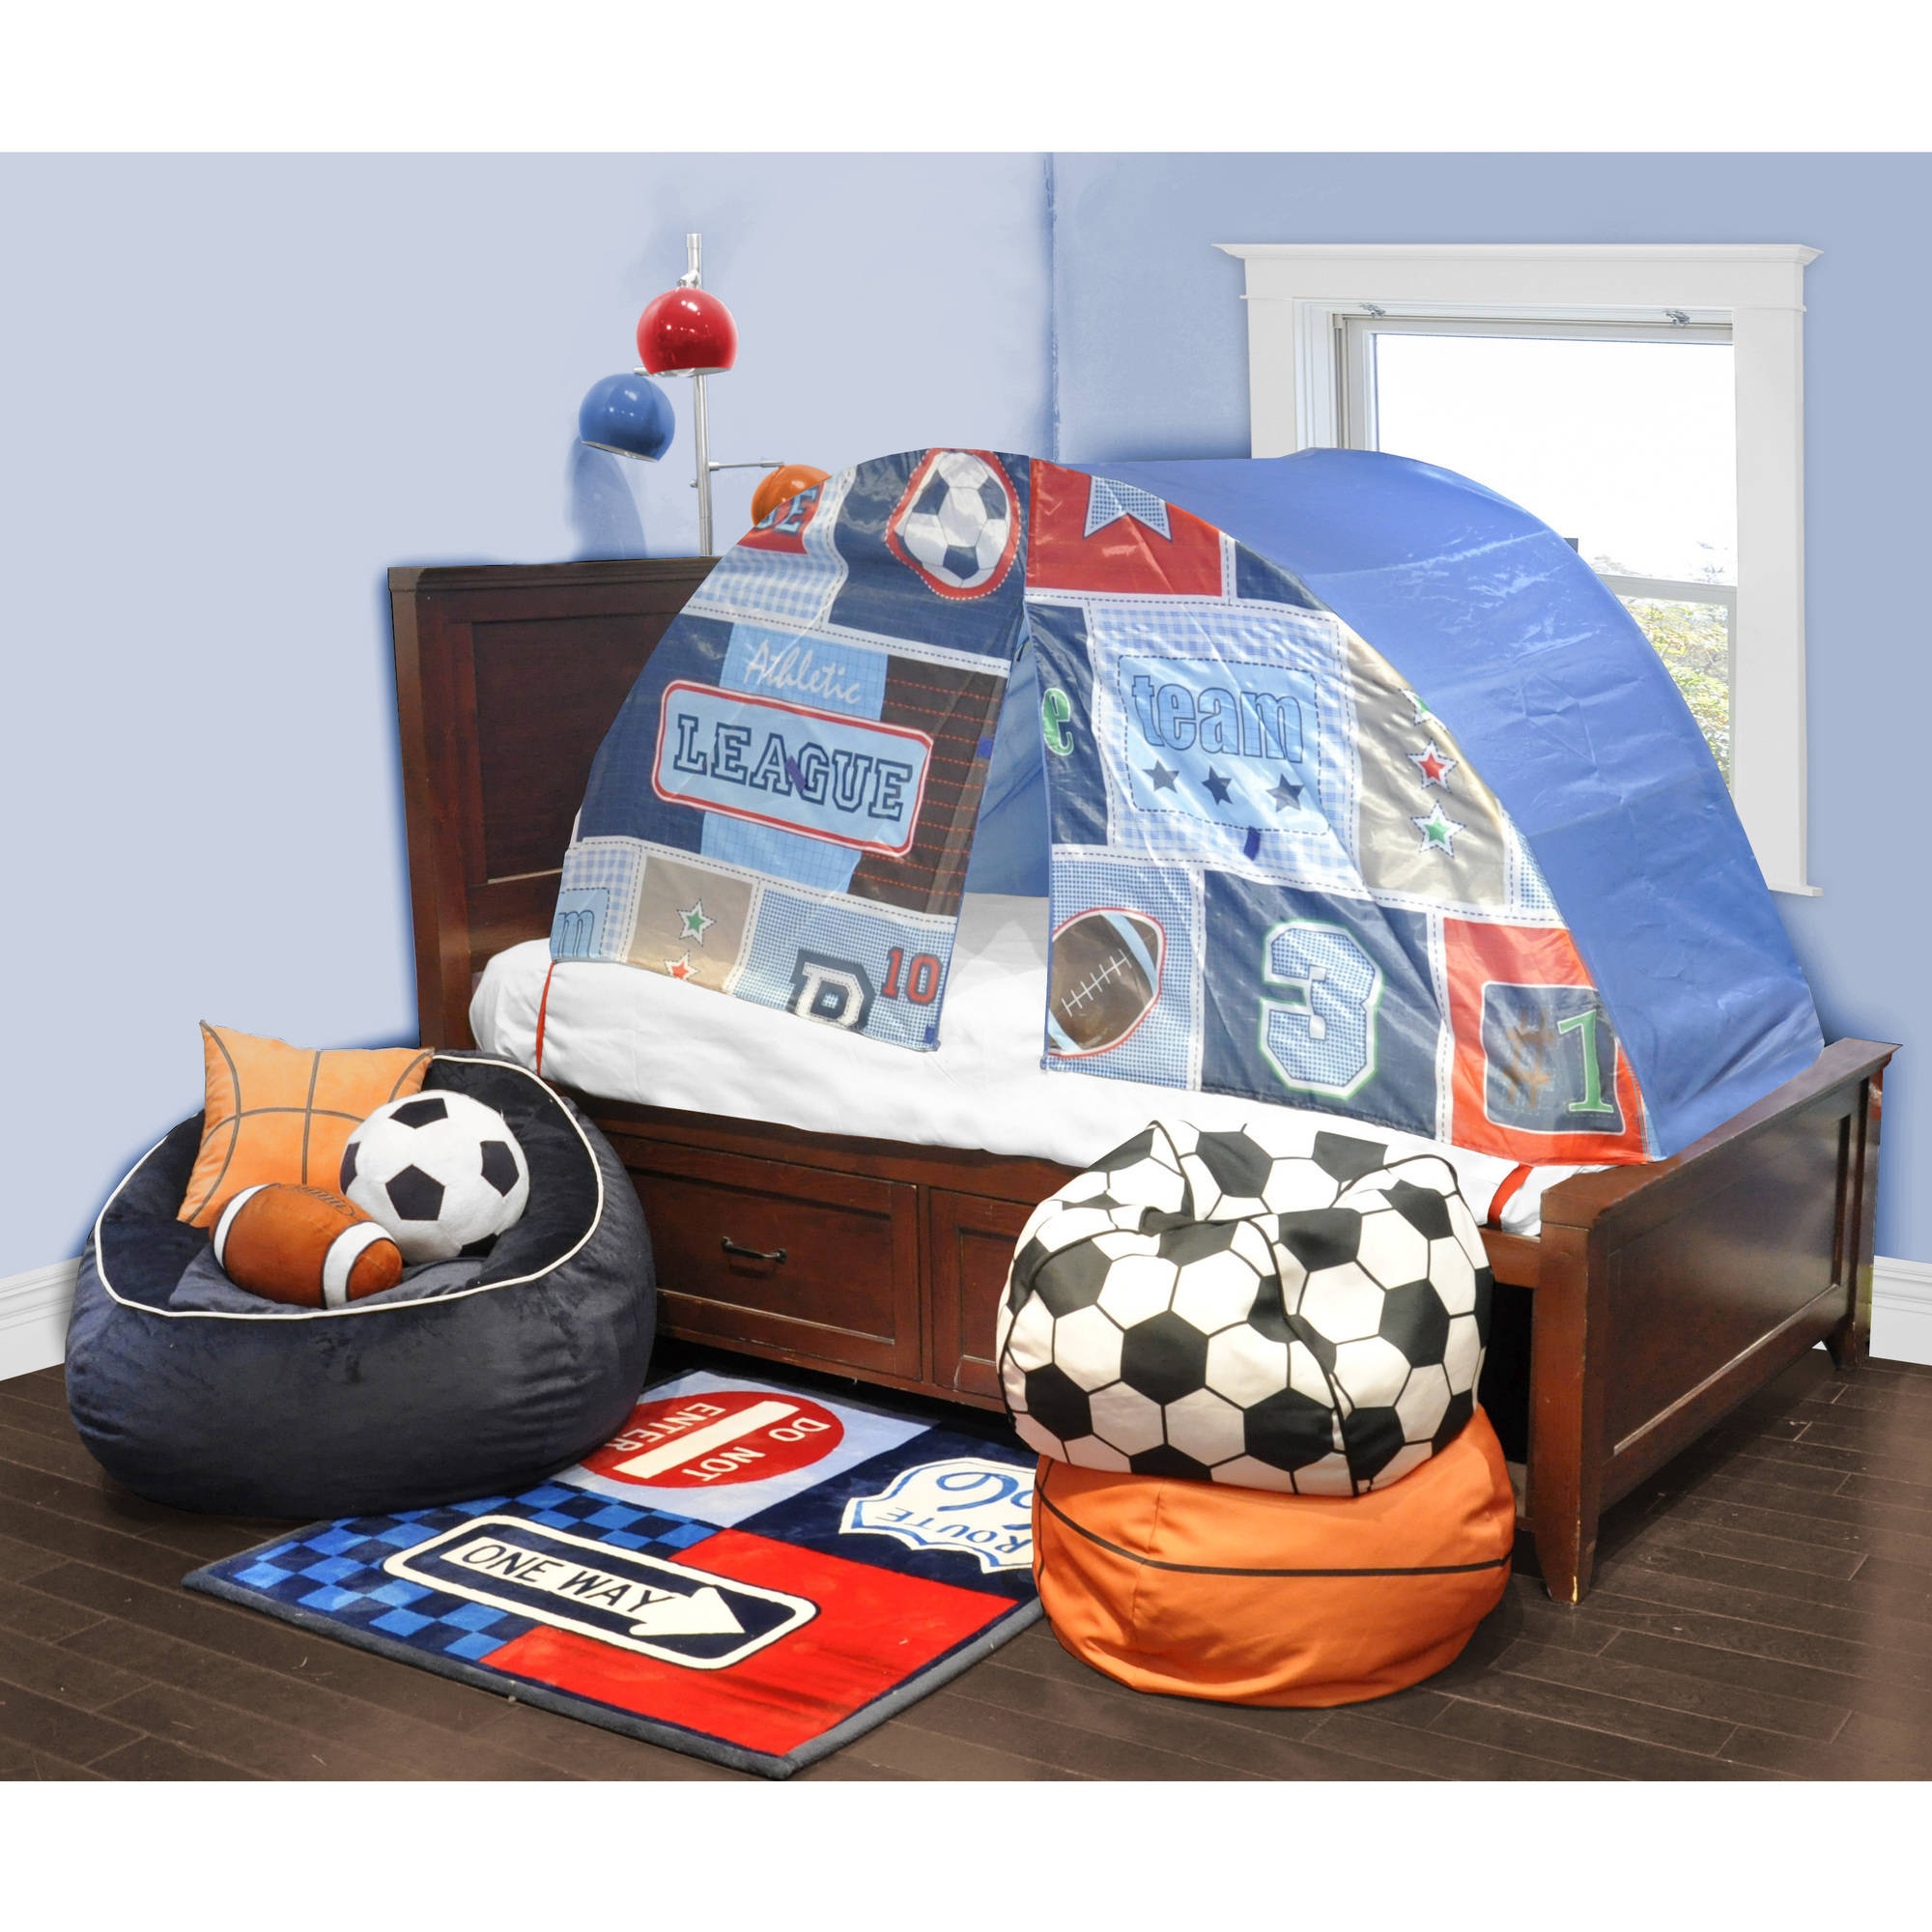 Kids Scene Sports Play Bed Tent  sc 1 st  Walmart : childrens tents at walmart - memphite.com